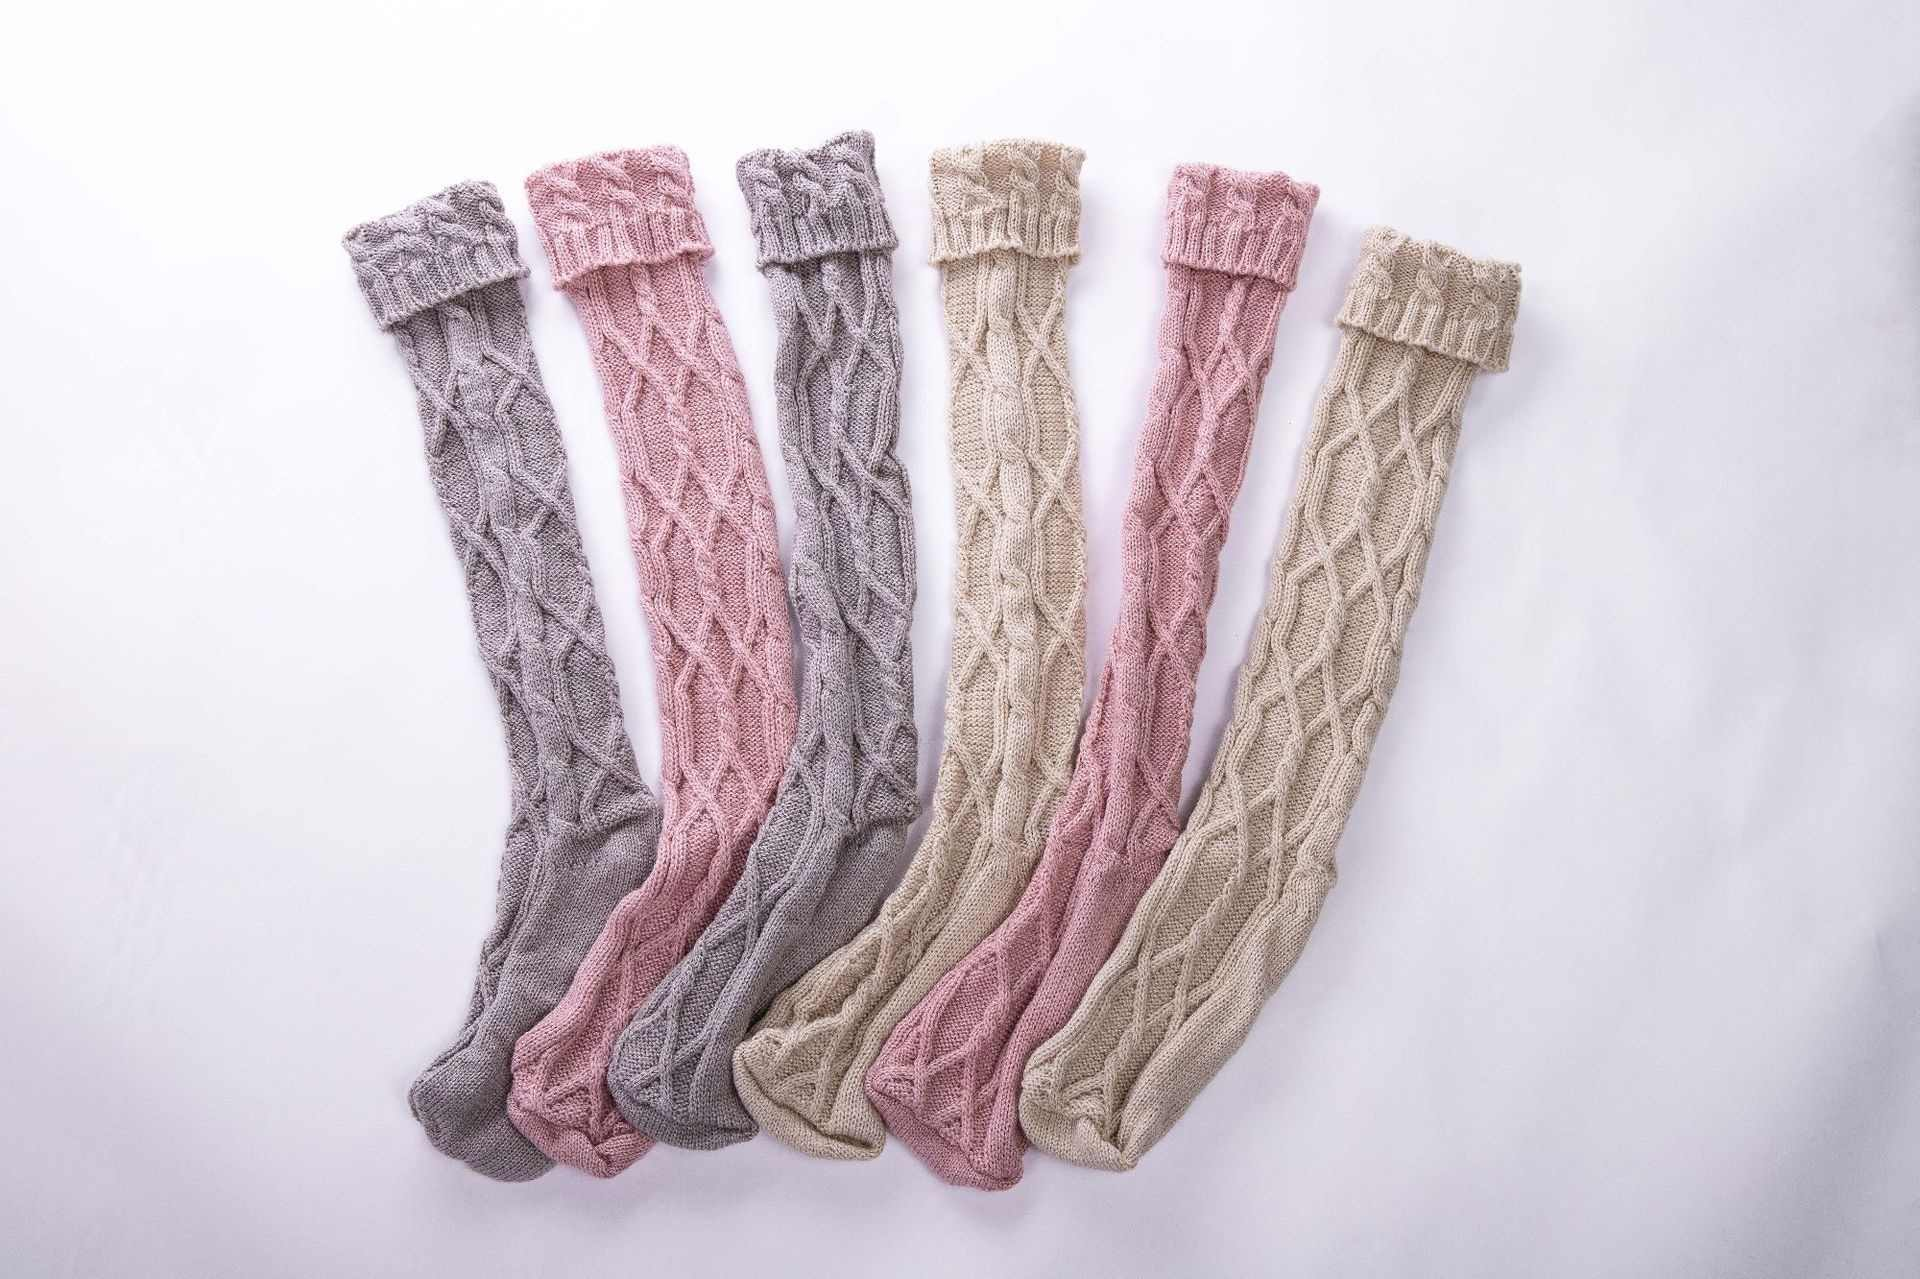 Twist Boot  Striped Kintted High Stocking Over The Knee Cotton Comfortable Warm Autumn Winter Lovely Cute Gifts for Women